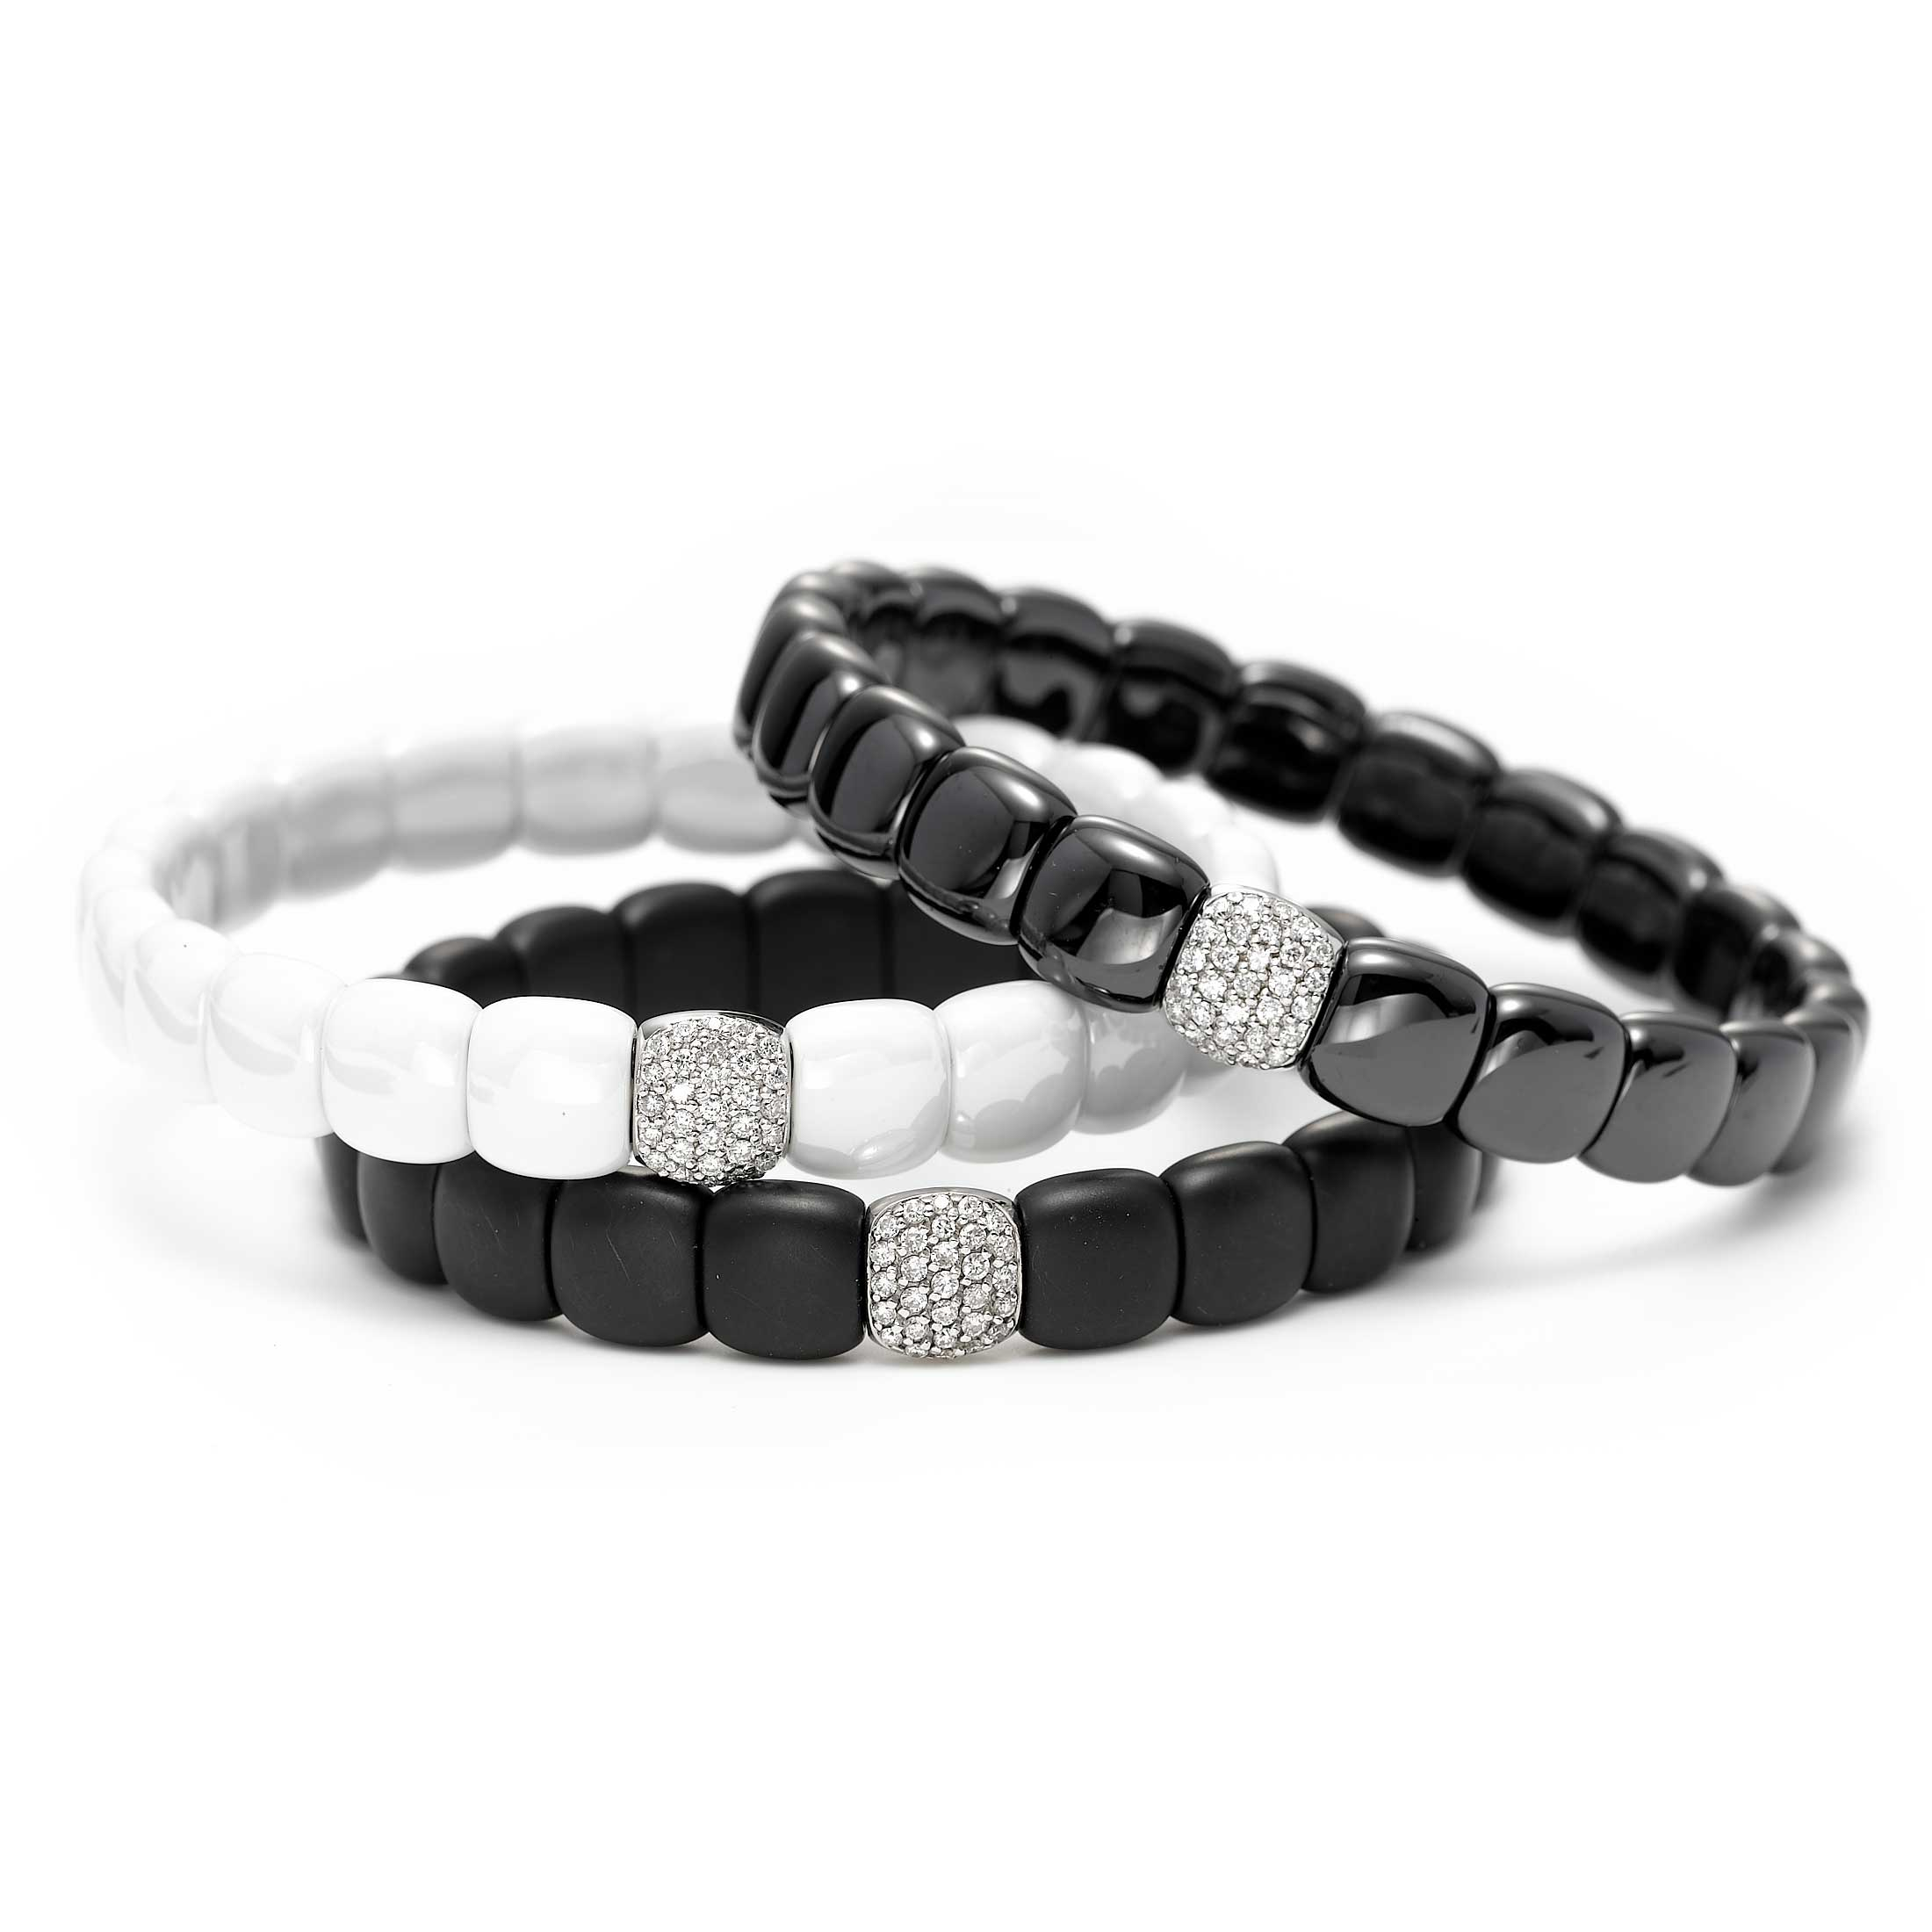 Shiny Black Ceramic Bracelet with 18K White Gold Pavé Tile